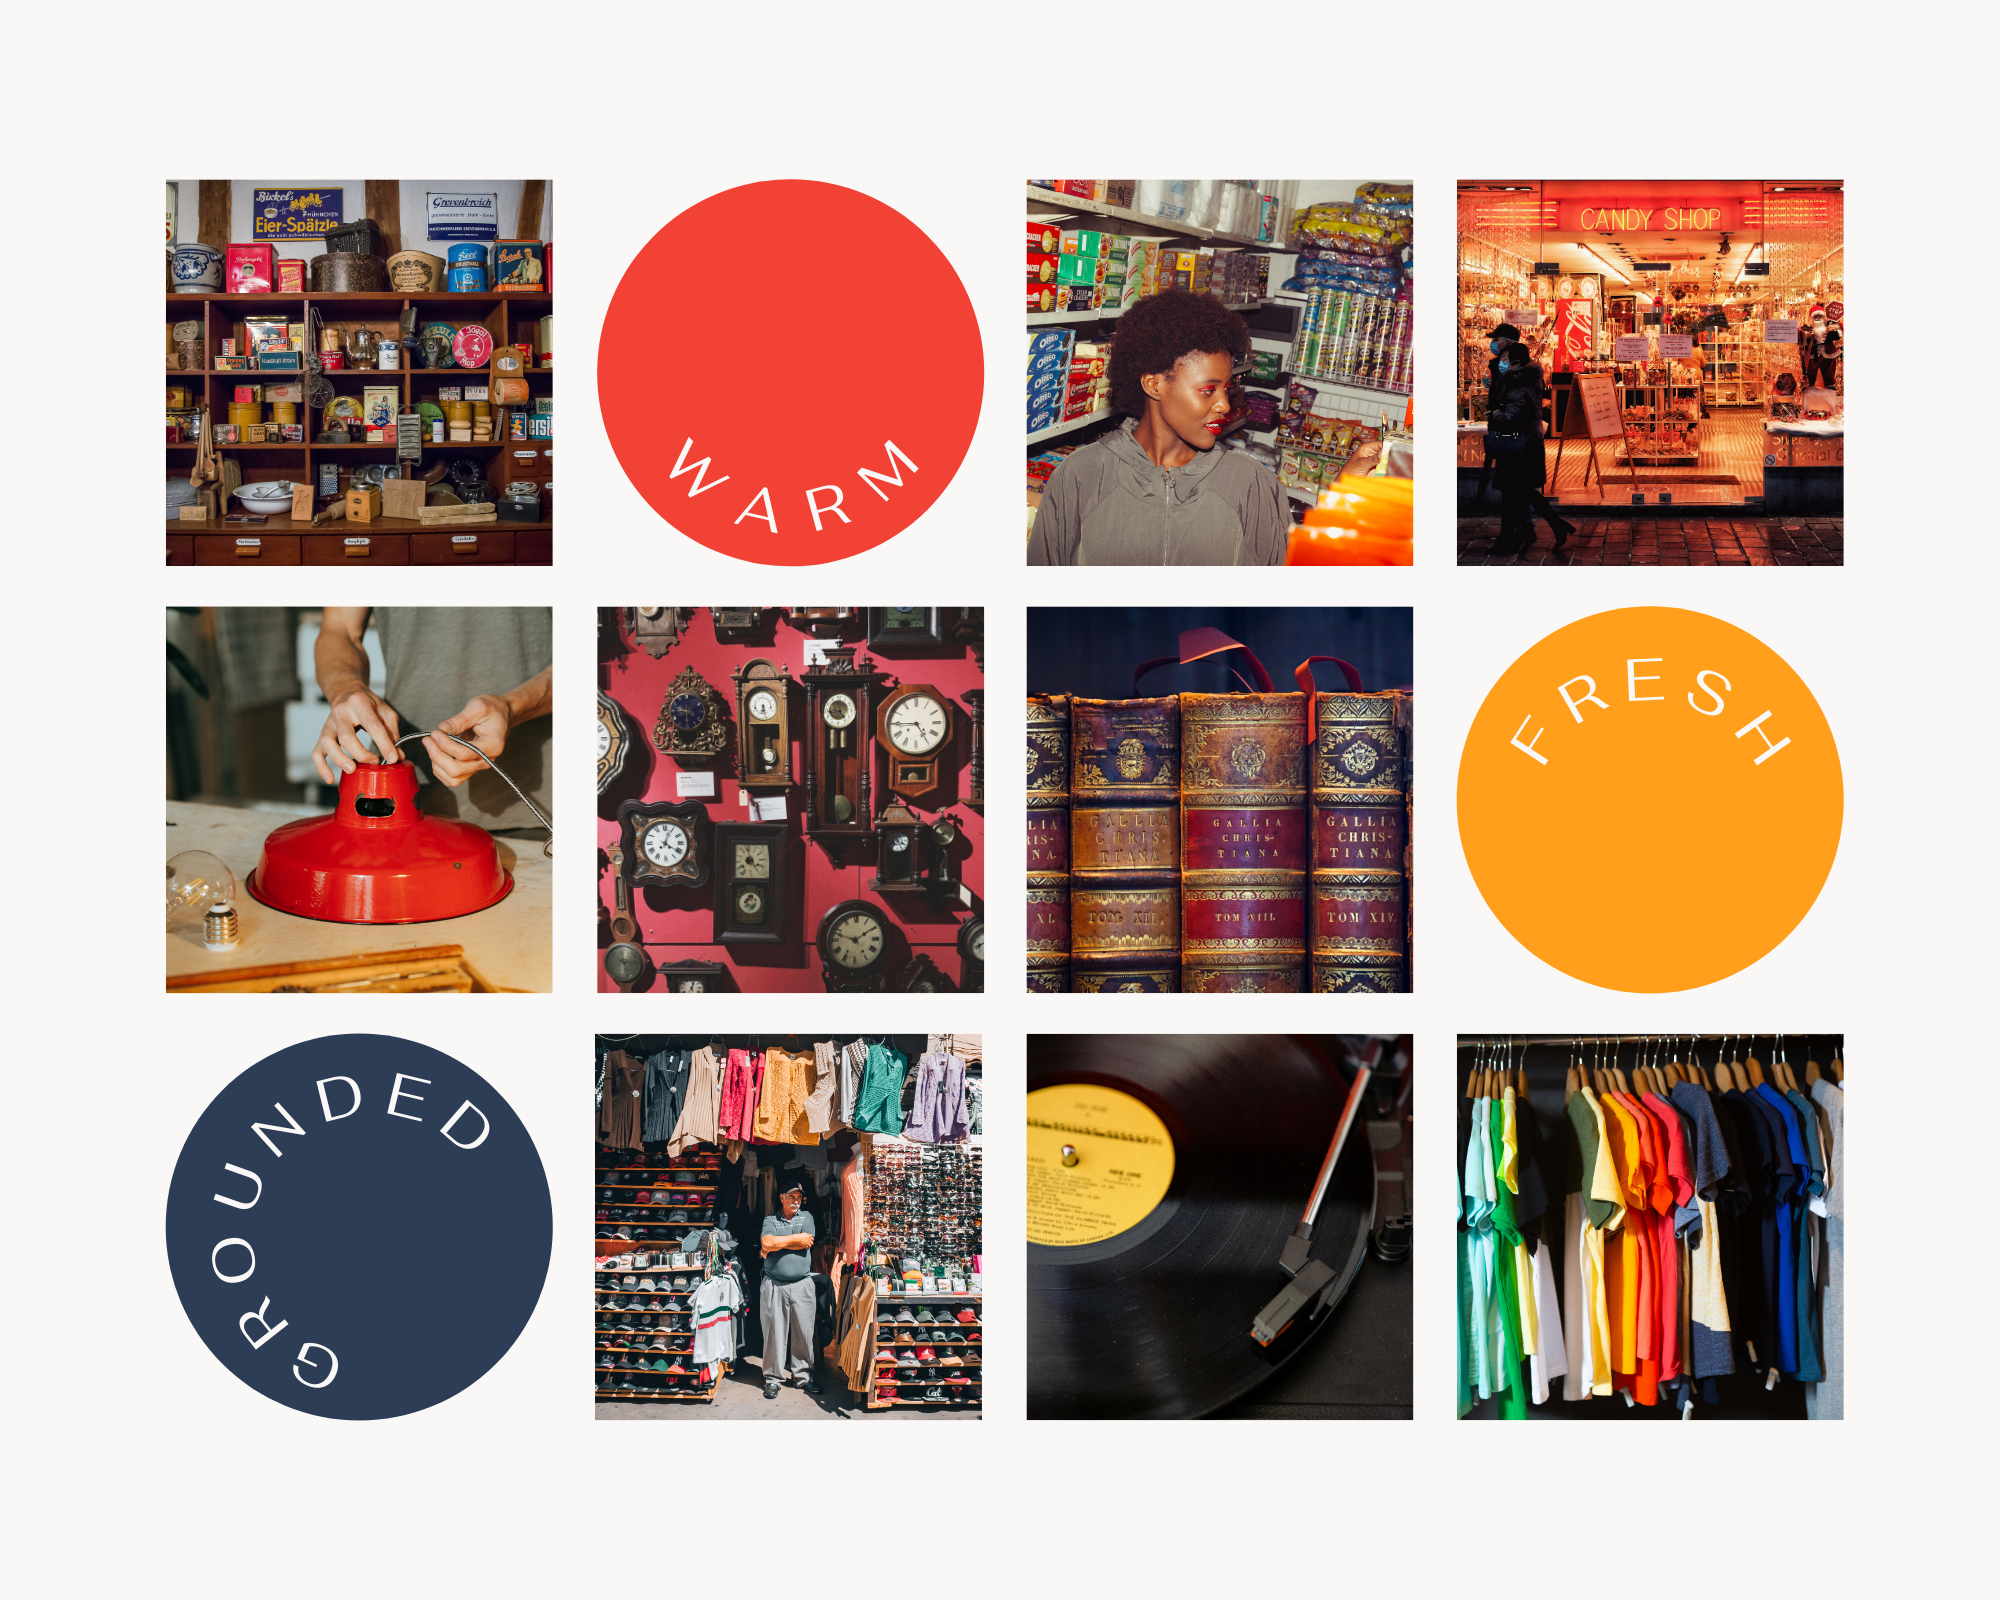 A mood board. There are several images in a grid of people at antiques stores as well as some images of clocks, organized clothes, and people working on a lamp.